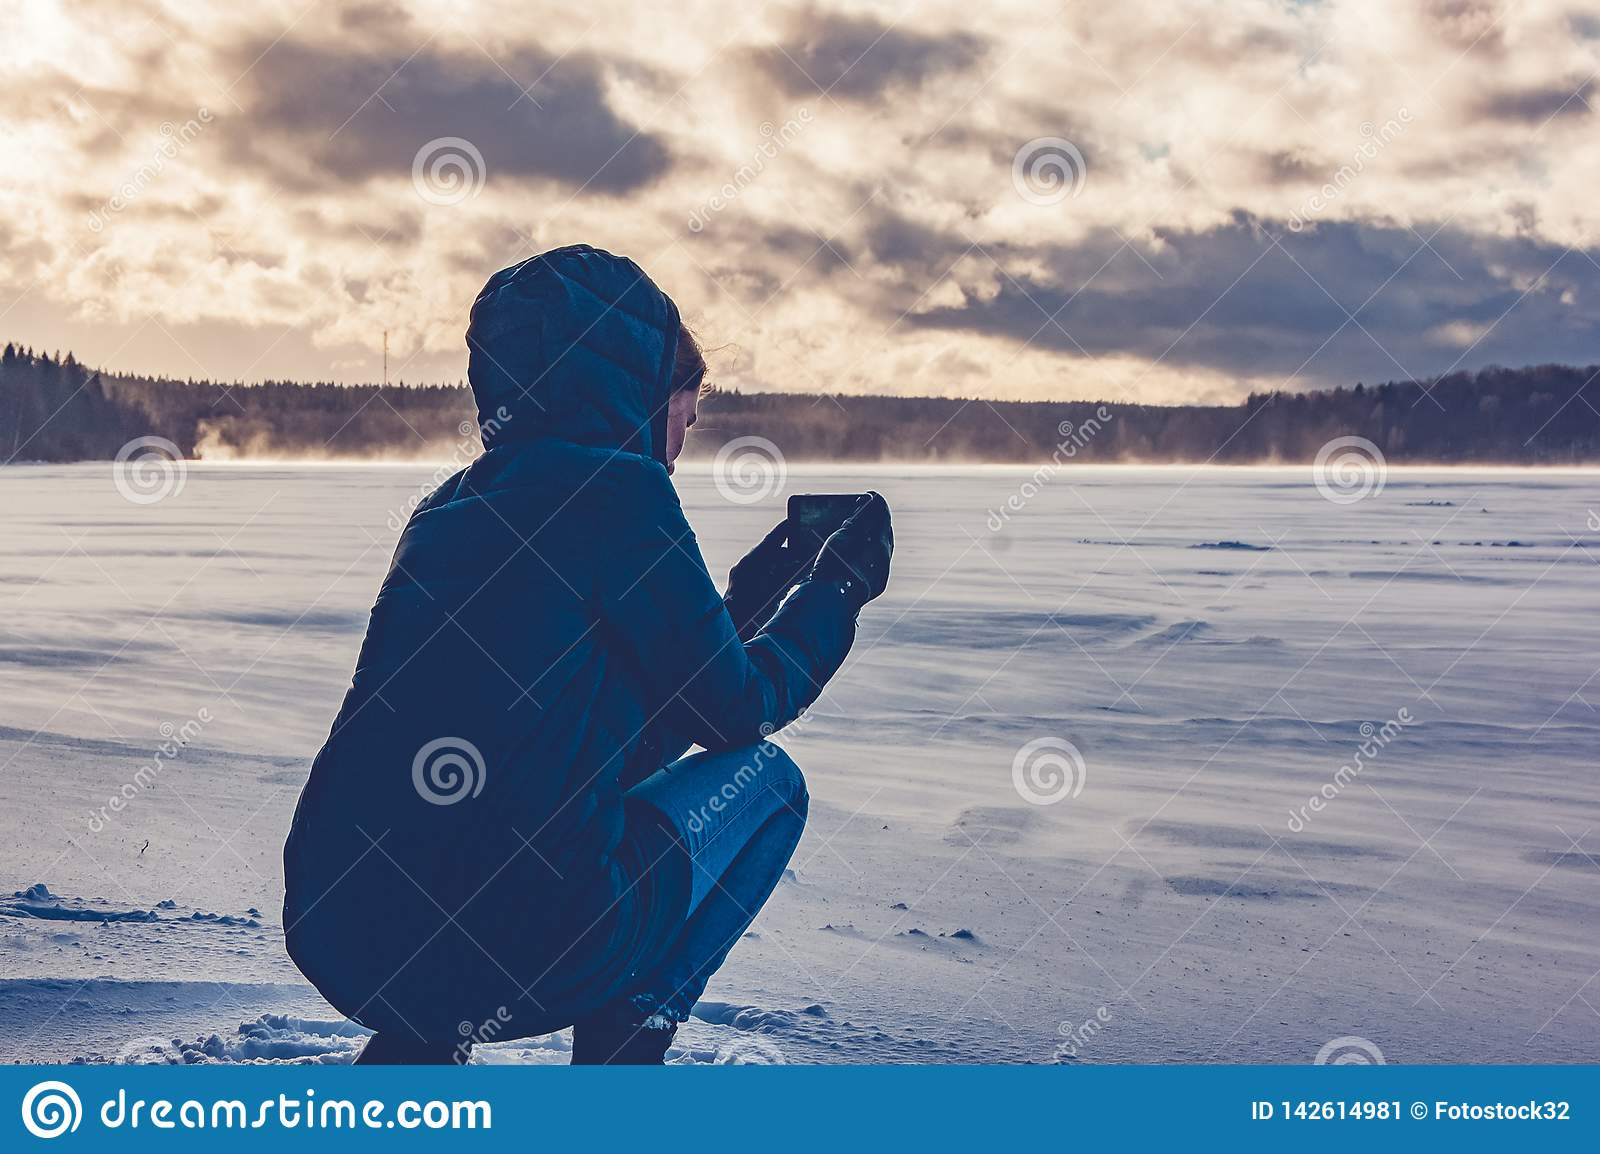 A girl photographs on the phone a frozen lake